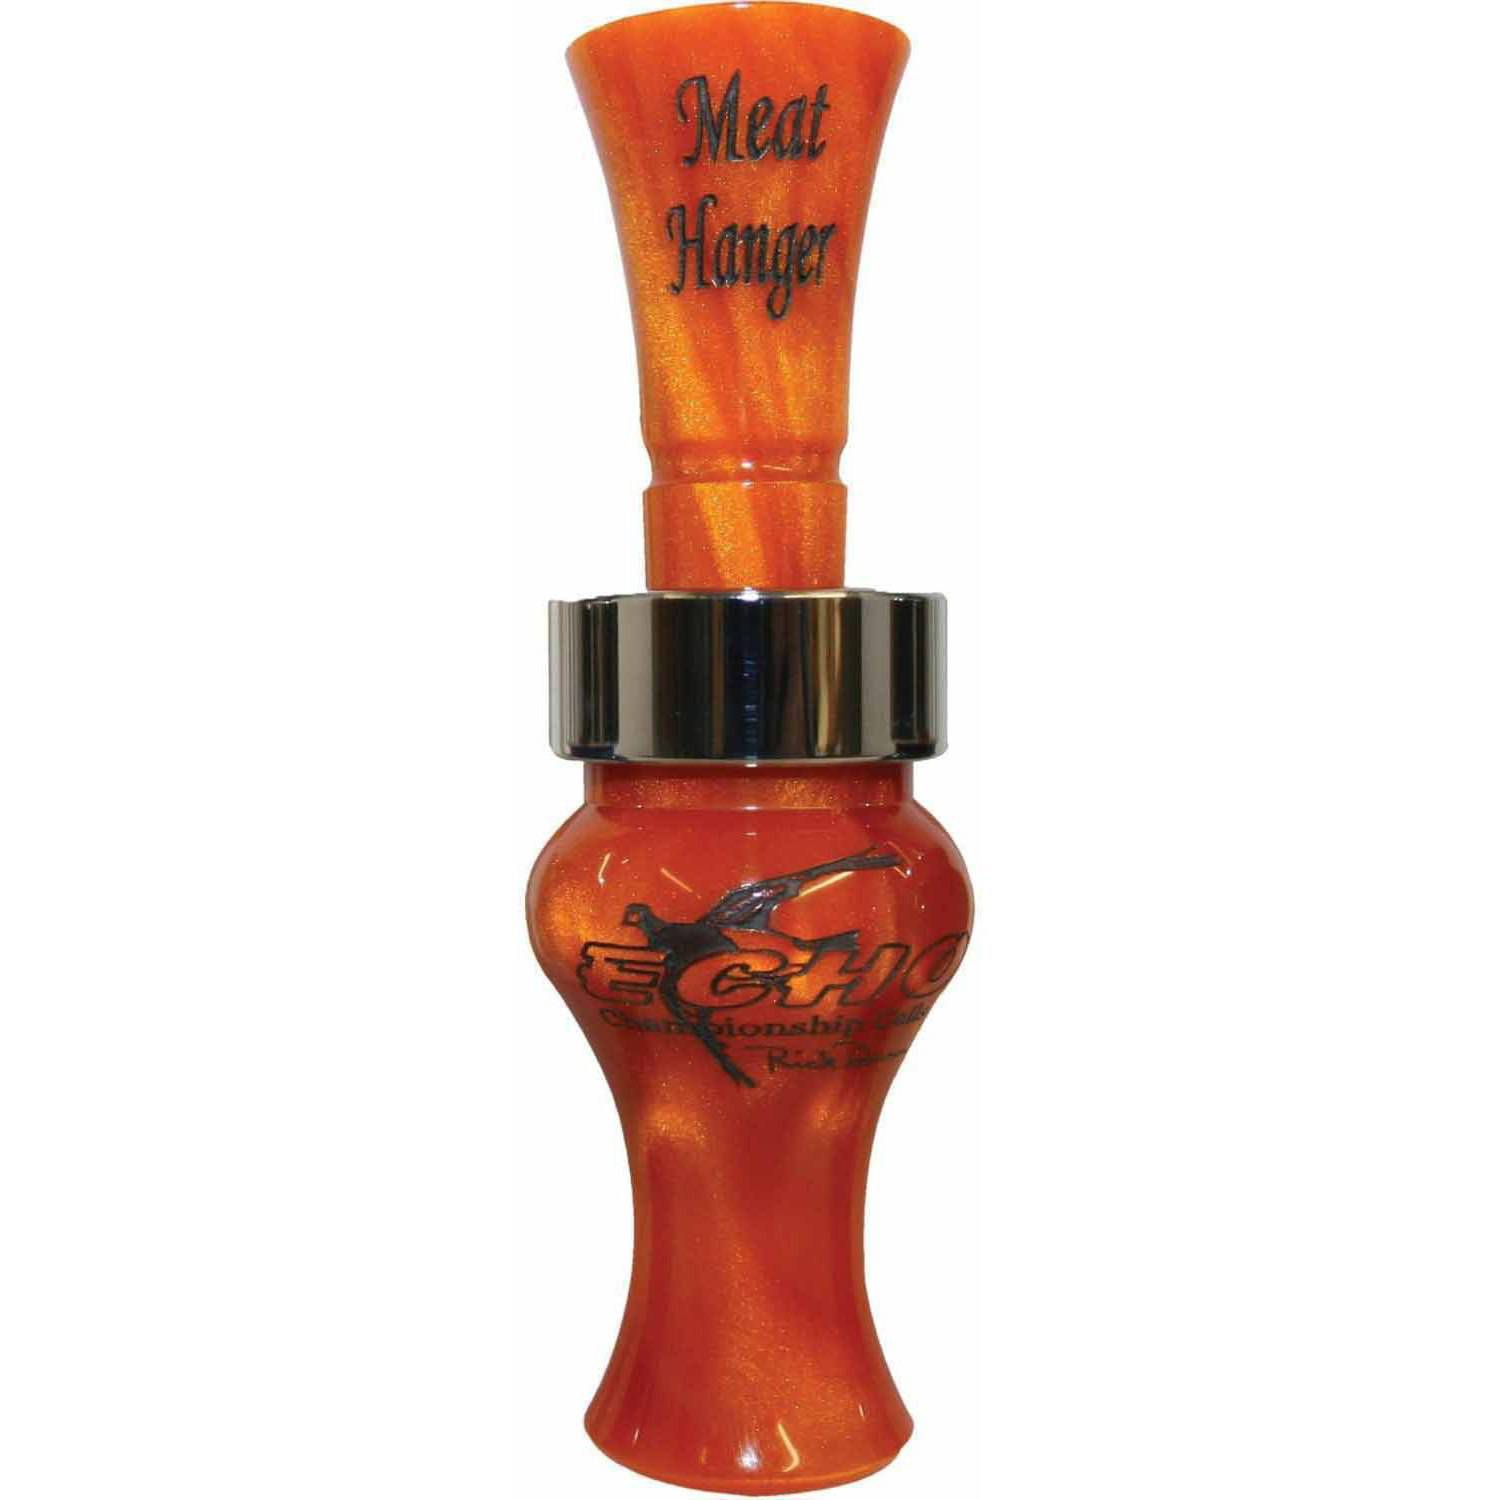 Echo Calls Meat Hanger Duck Call, Blue/Pearl